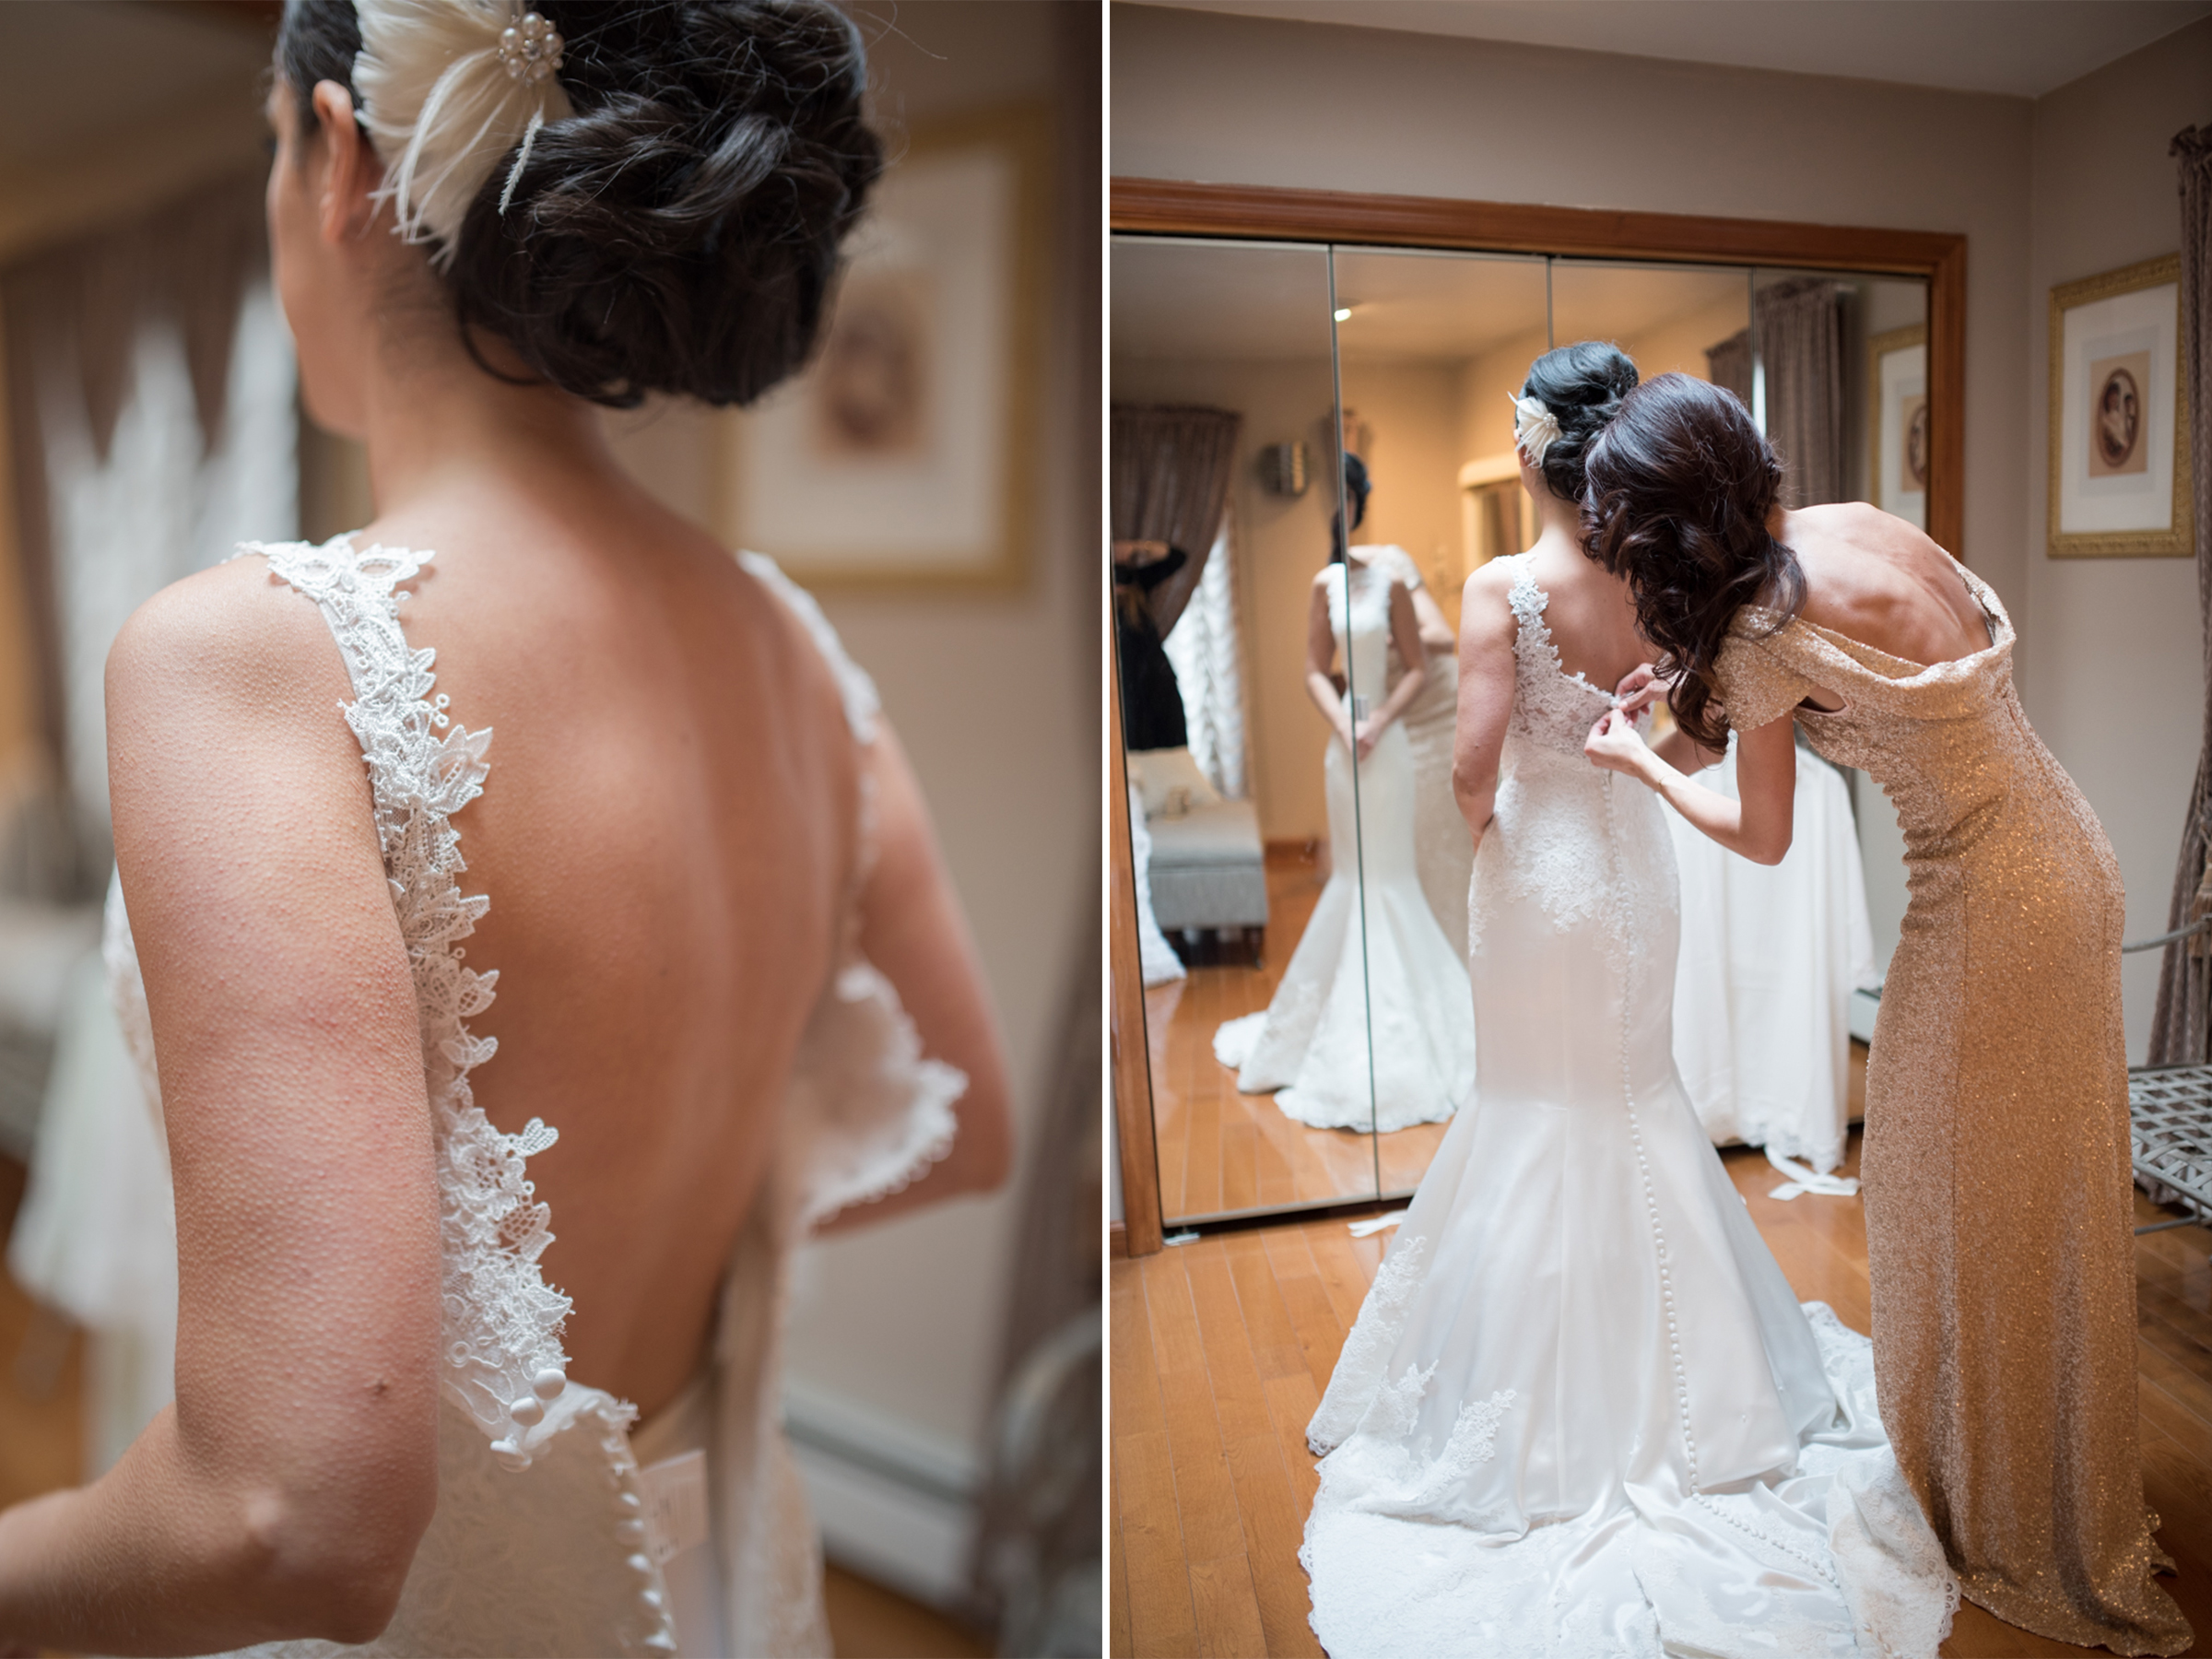 Michelle+Joe- Bride Getting Dressed Lace Mermaid Gown - Ryland Inn Winter Wedding - New Jersey - Olivia Christina Photo.jpg